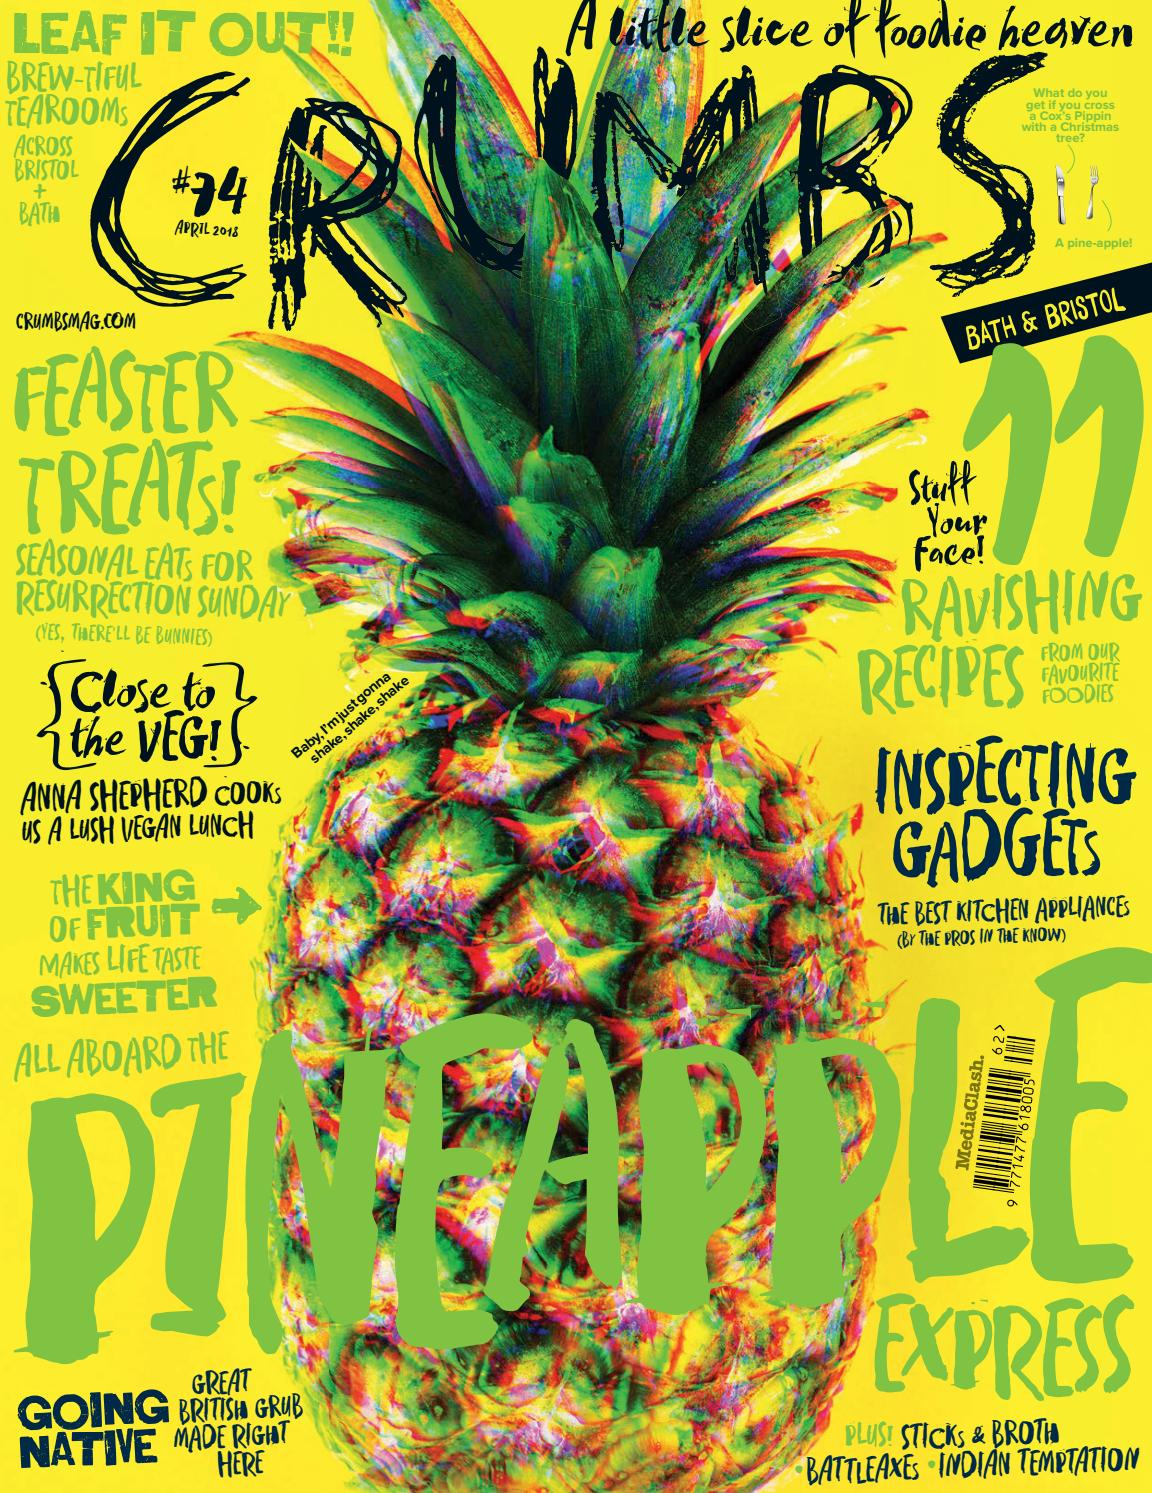 Festivals of Mexico: where to go throwing radishes and pineapples